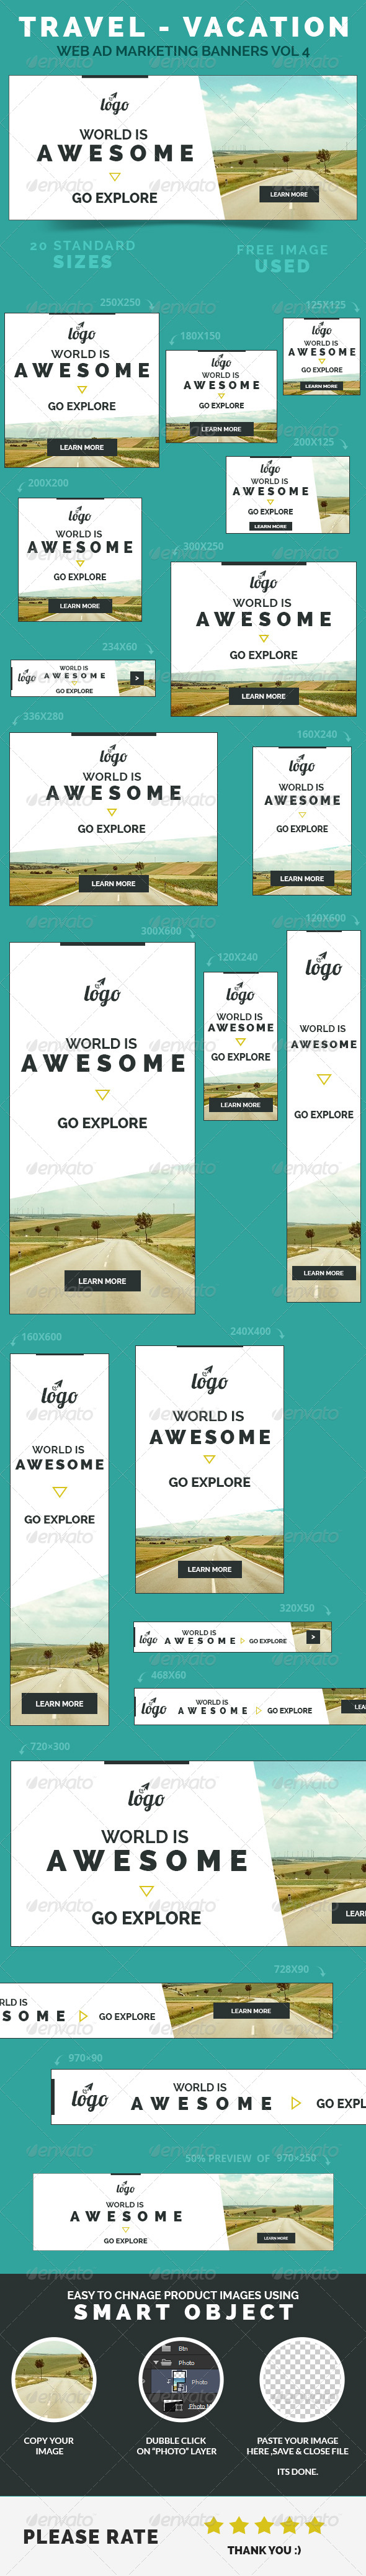 GraphicRiver Travel Vacation Web Ad Marketing Banners Vol 4 8500668